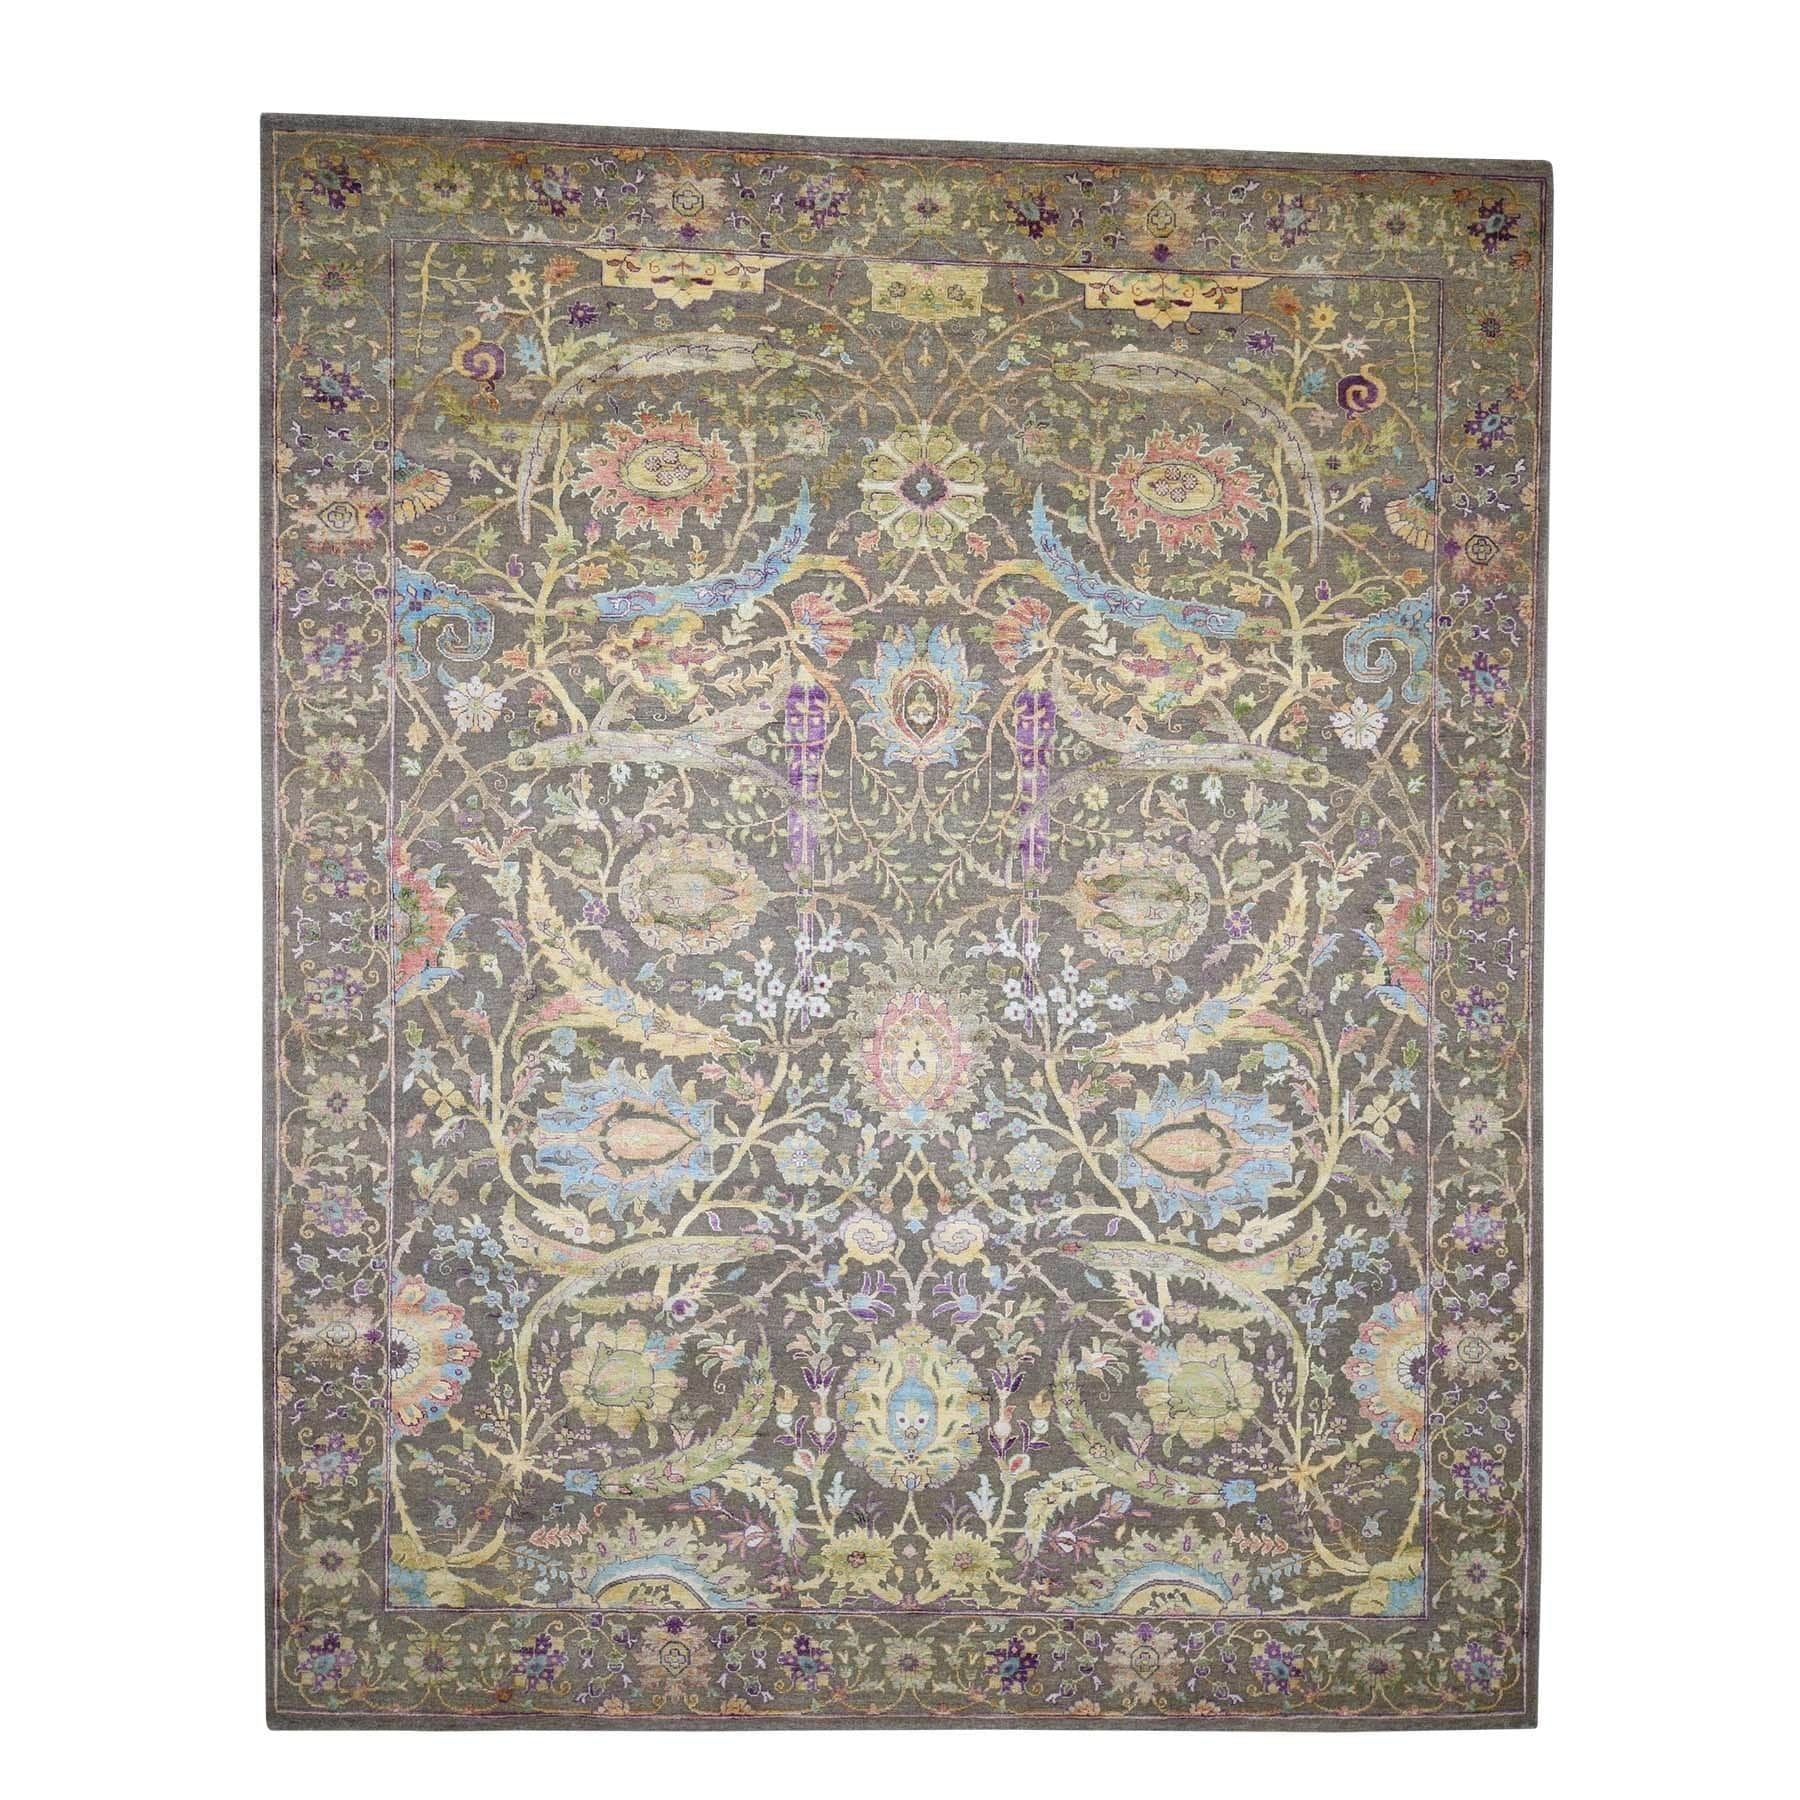 Shahbanu Rugs Hand Knotted Sickle Leaf Design Pure Silk With